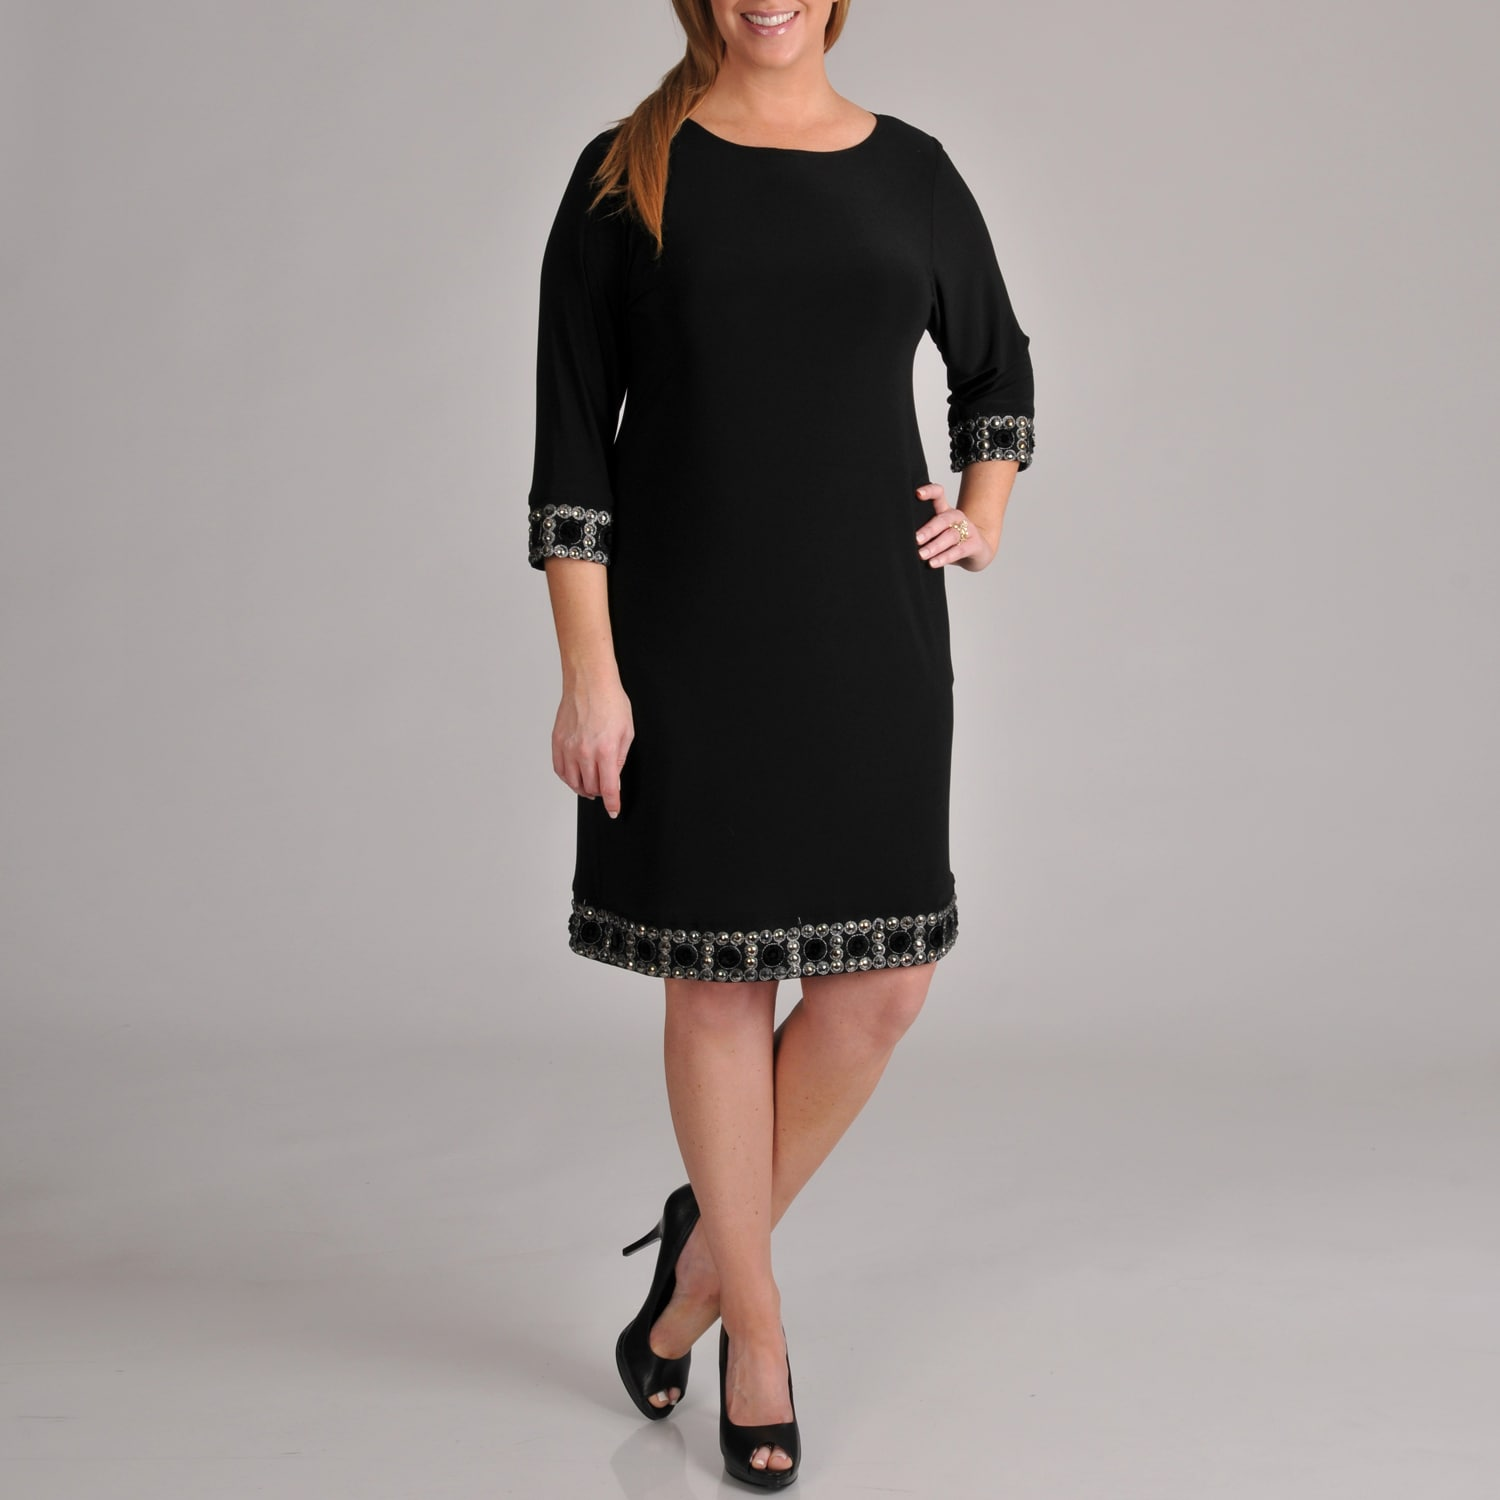 tiana b dresses plus size long